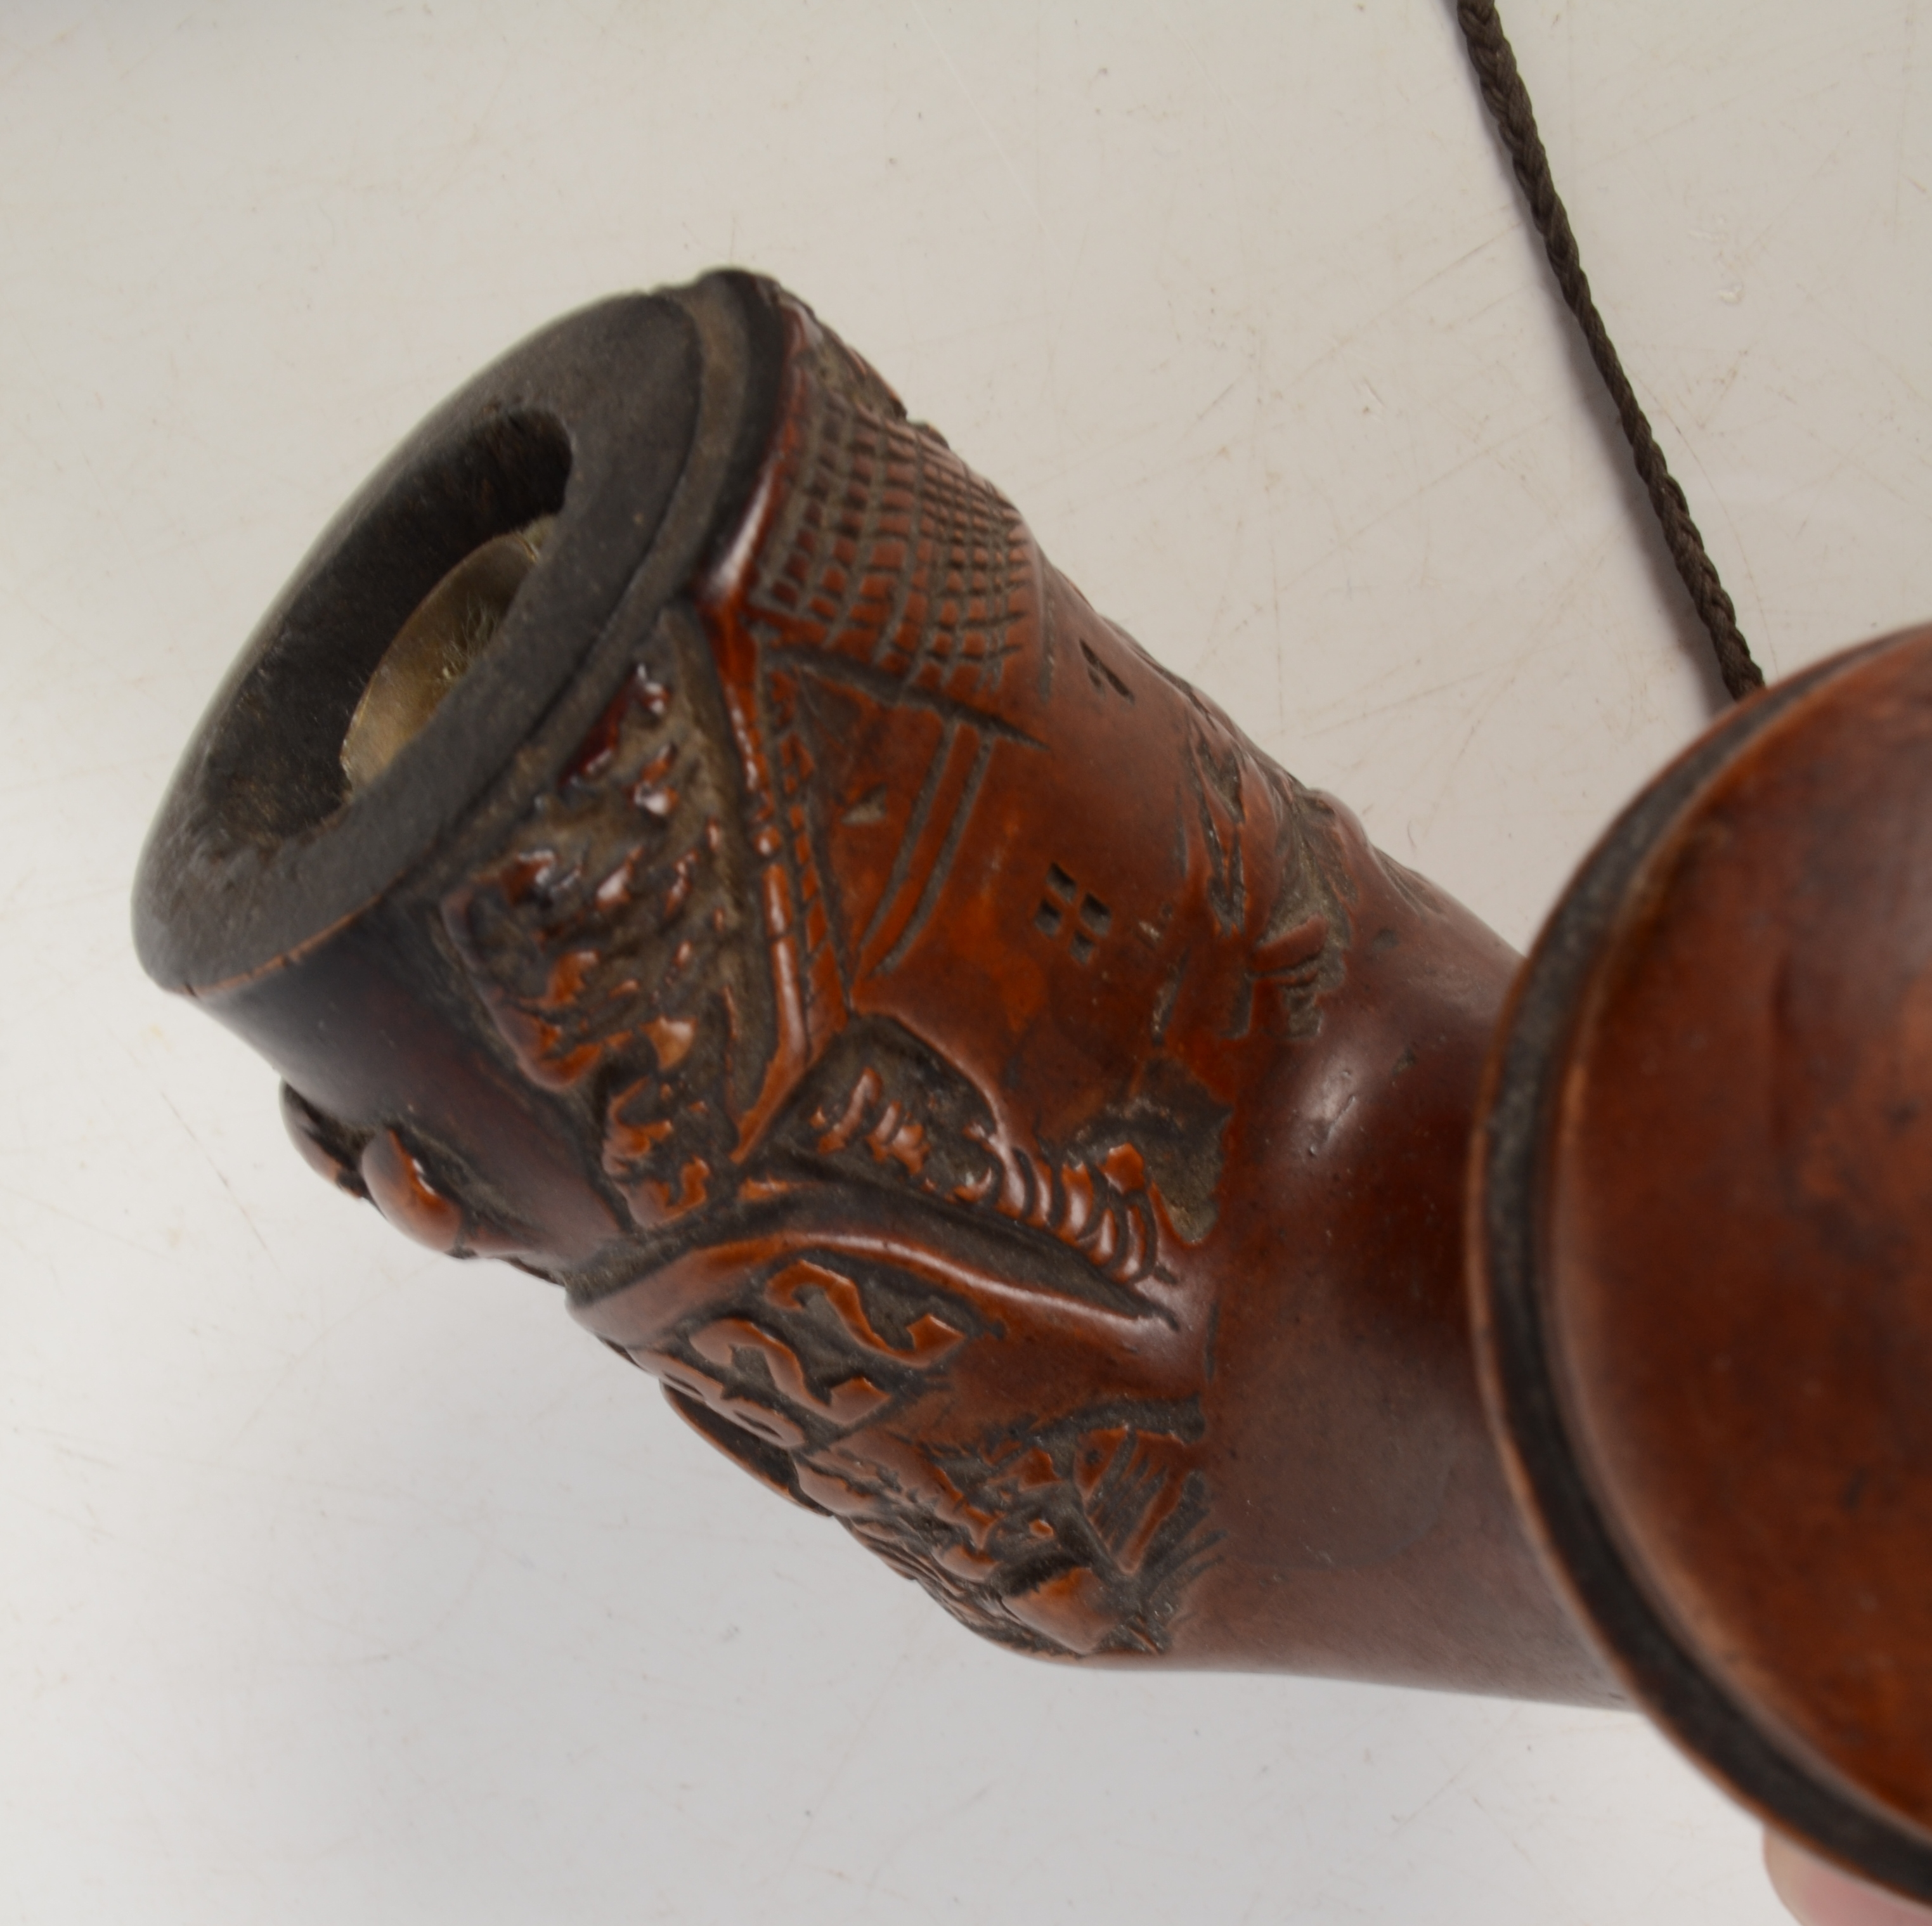 Lot 19 - A wooden pipe, possibly Swiss, carved with a house and a dog and dated 1822, height 11cm.